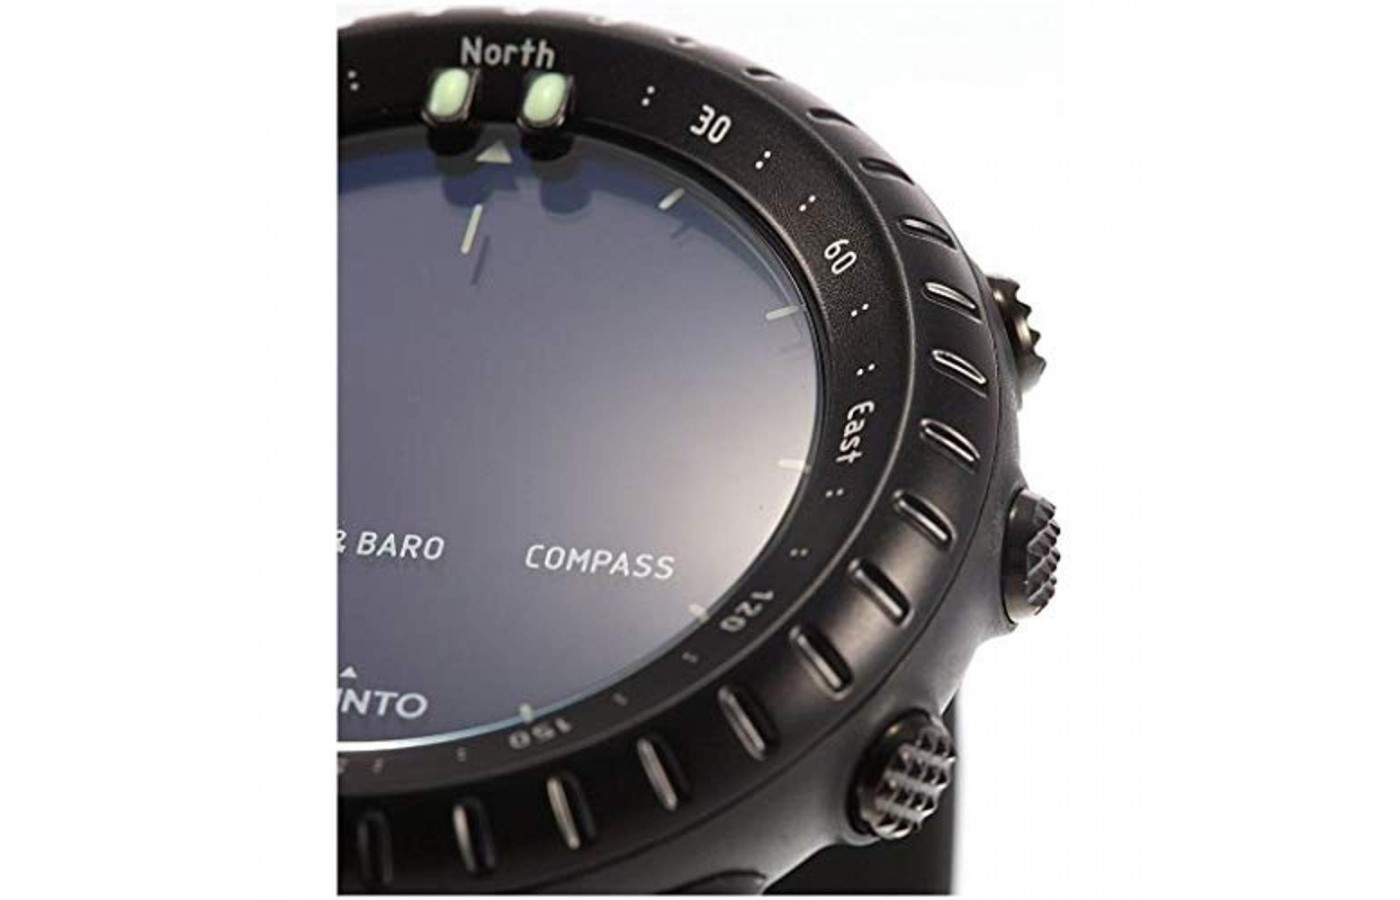 The watch is waterproof up to 100 feet deep.